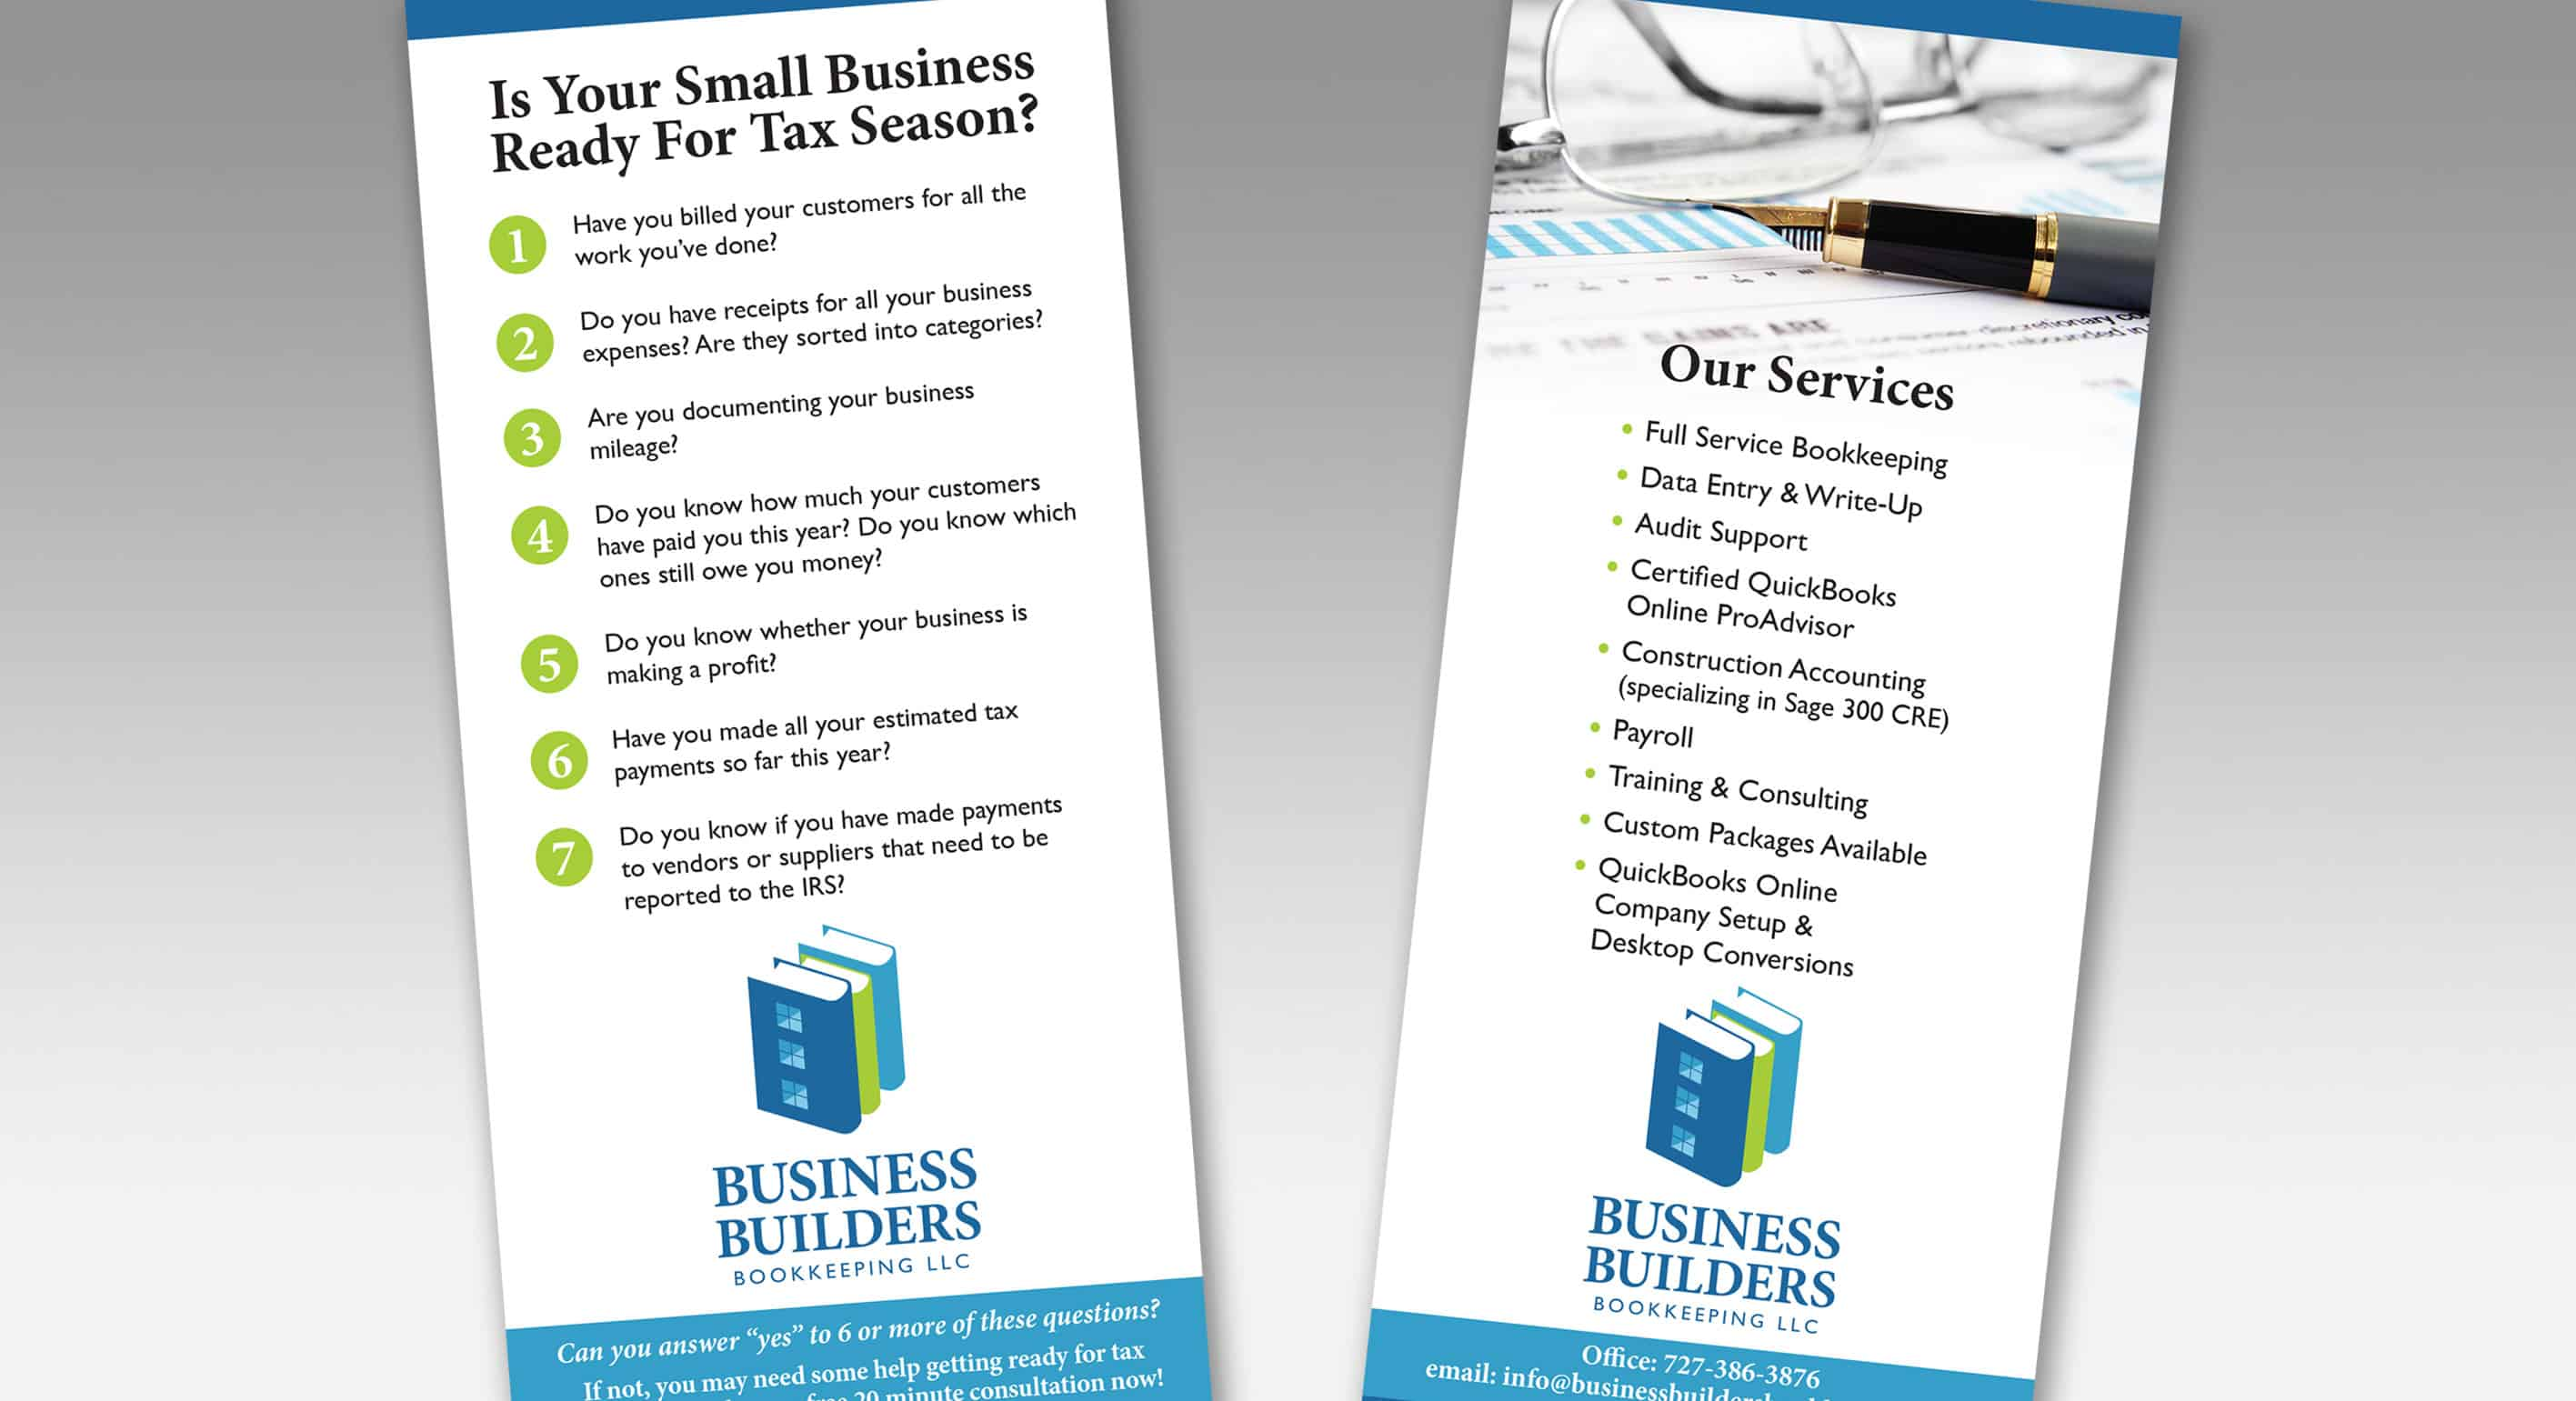 Business Builders Bookkeeping